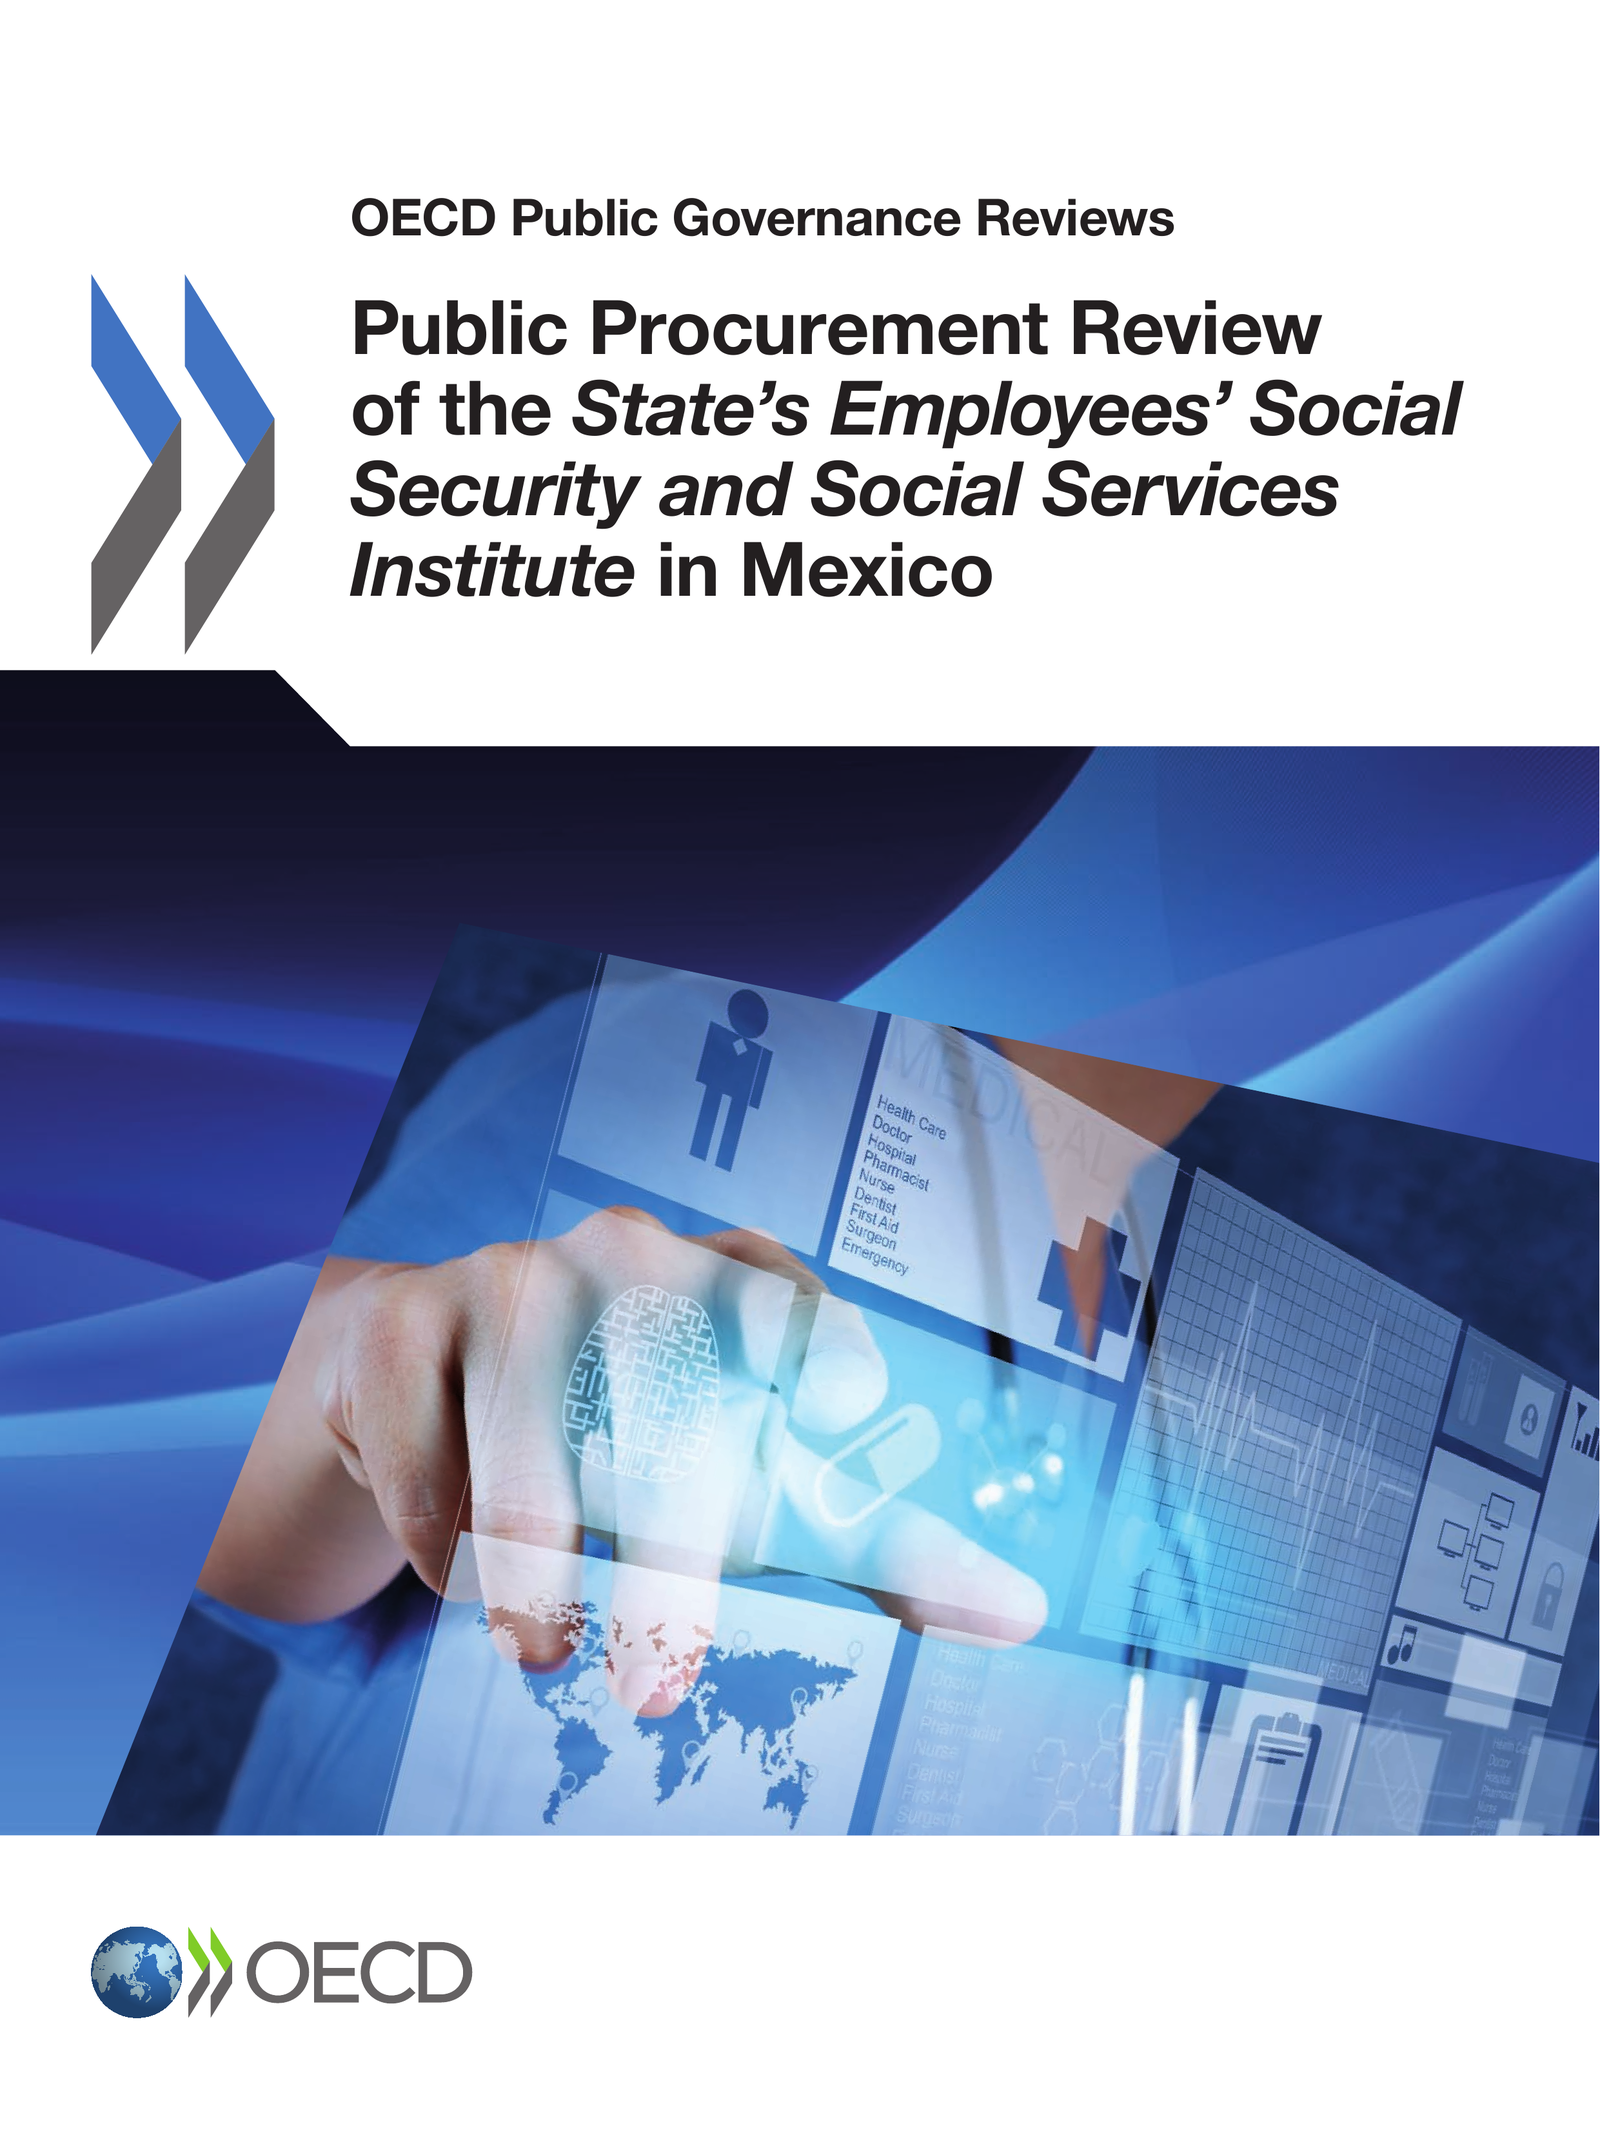 Public Procurement Review of the State's Employees' Social Security and Social Services Institute in Mexico